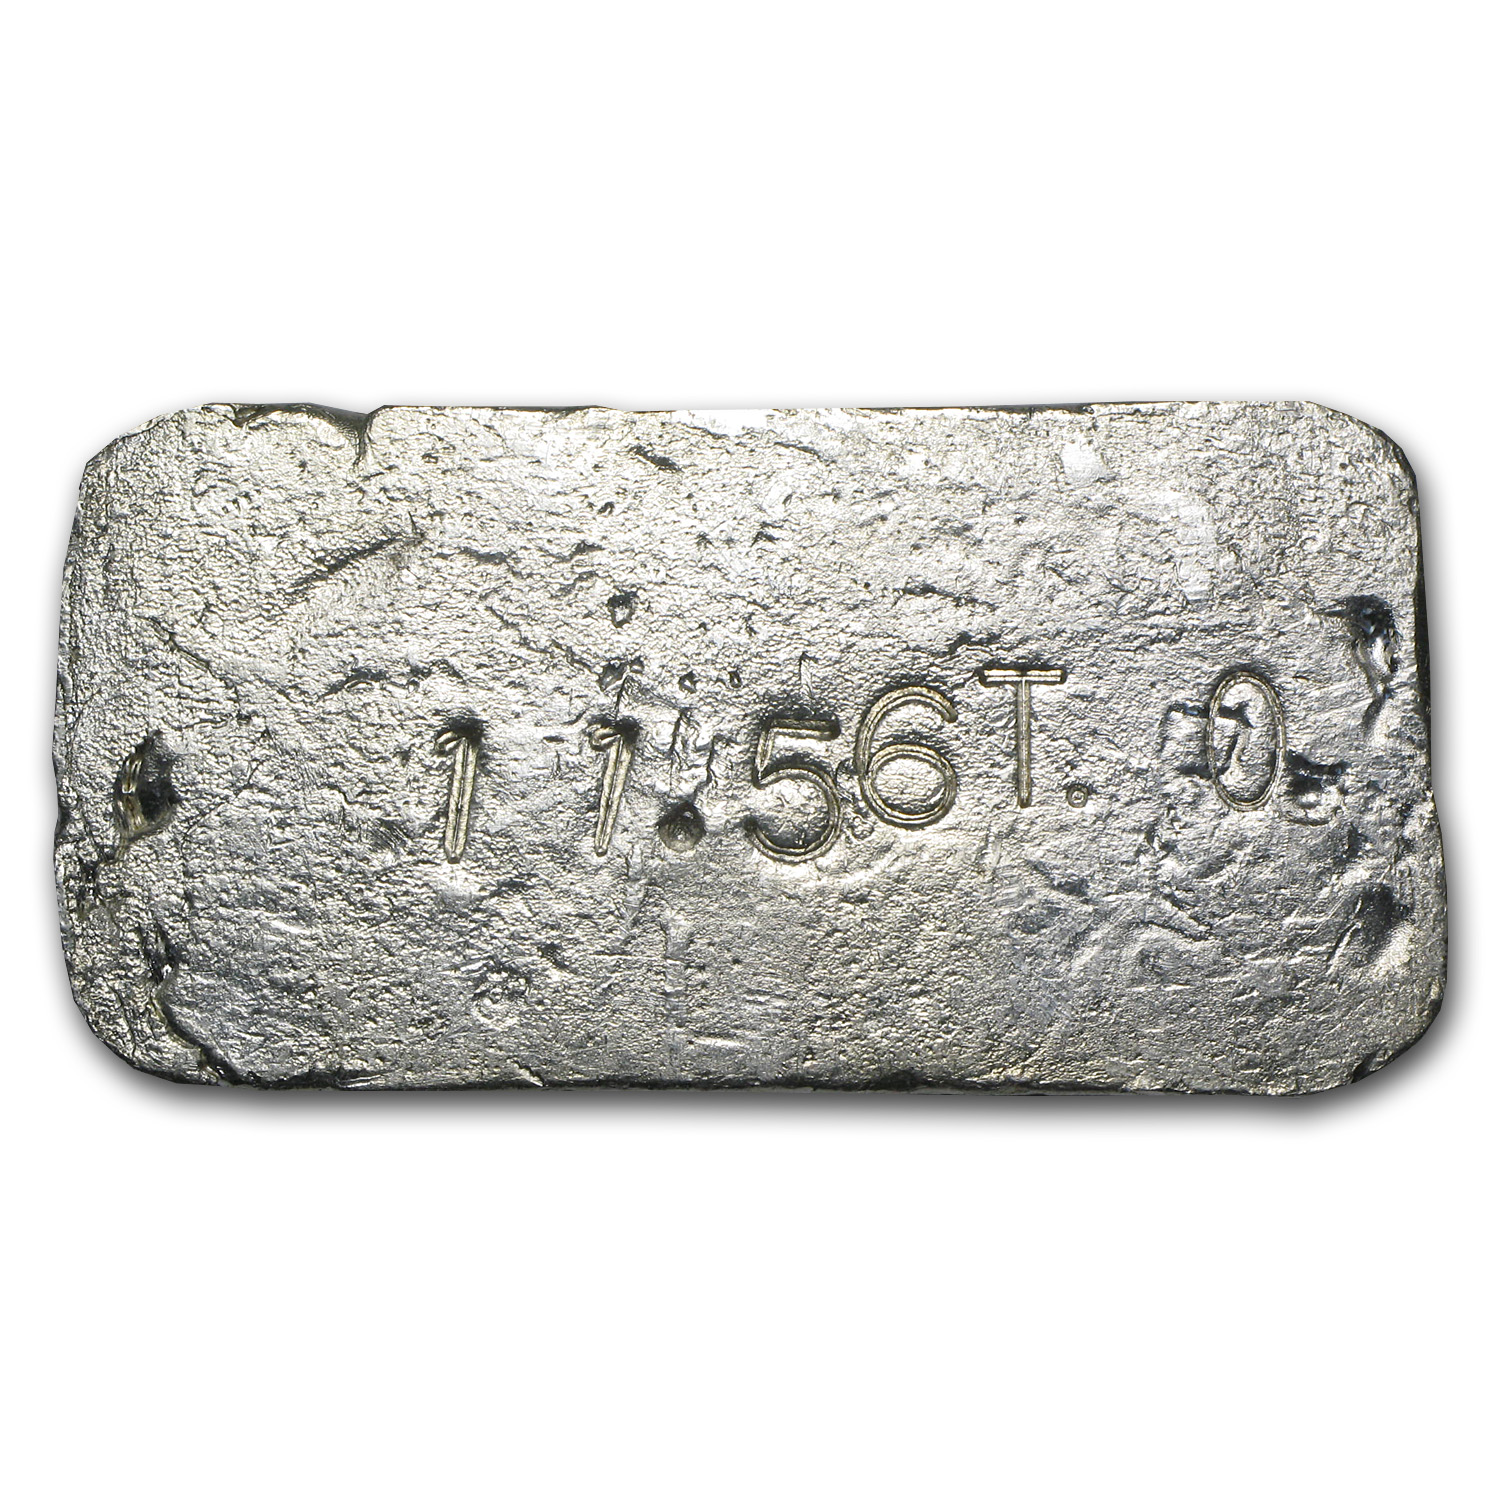 11.56 oz Silver Bar - B. R. MacKay & Sons